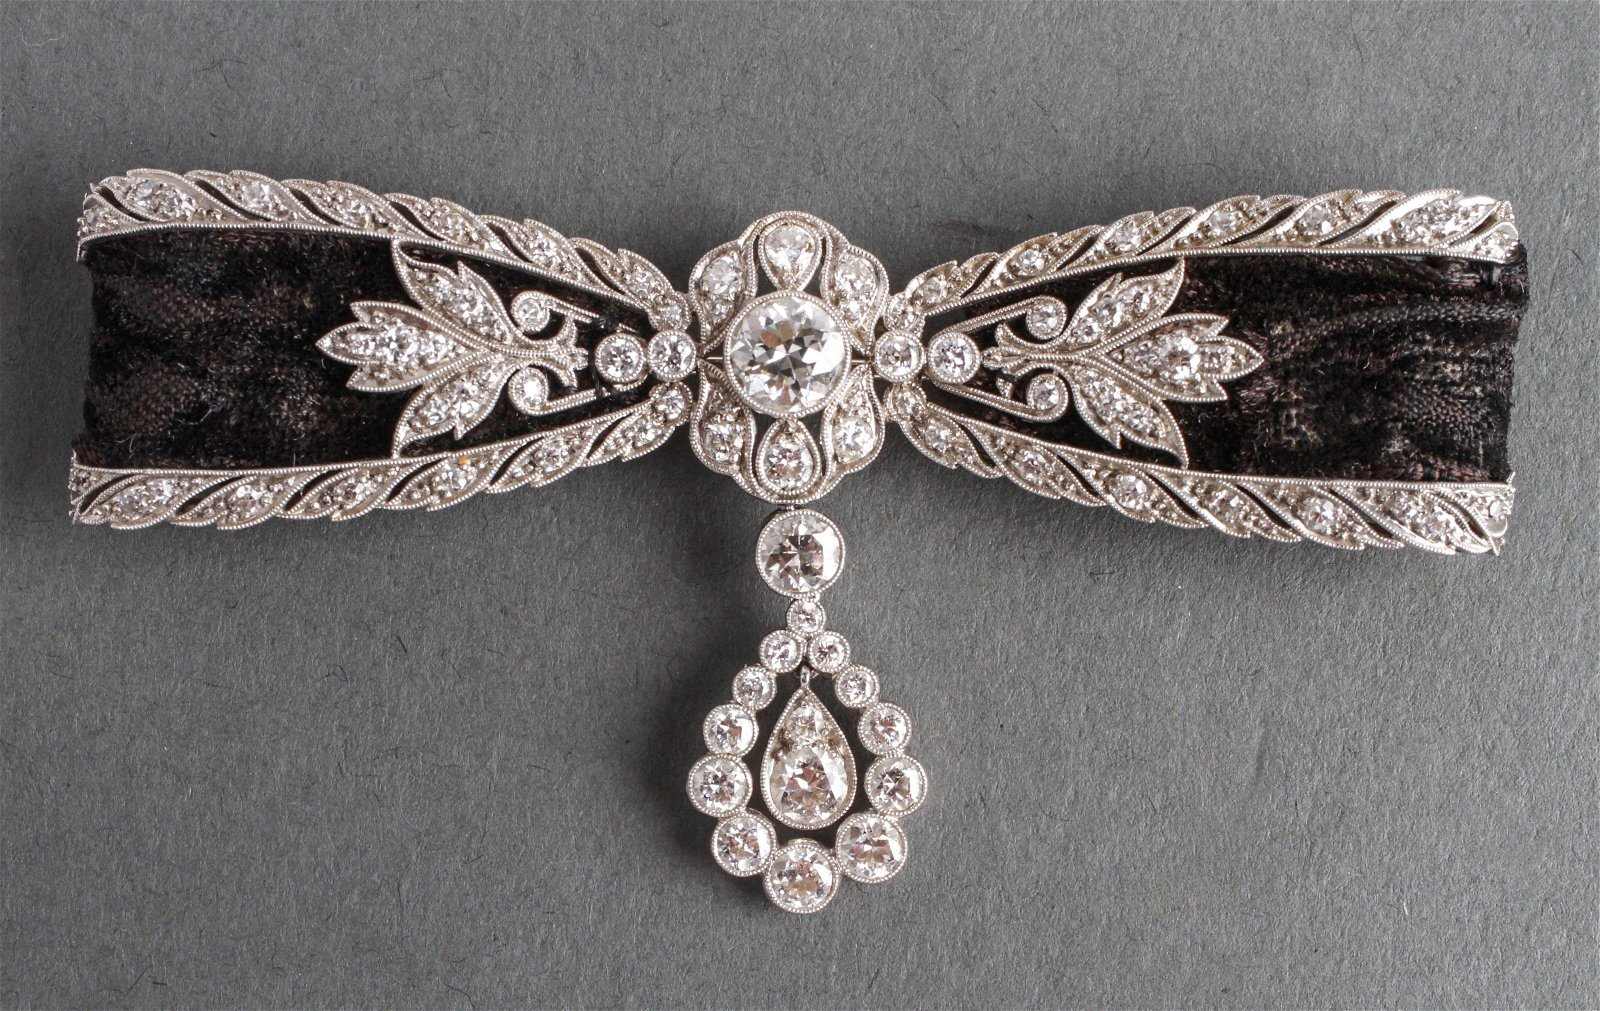 18K White Gold 4.5 Cts Diamonds Bow Dangle Brooch